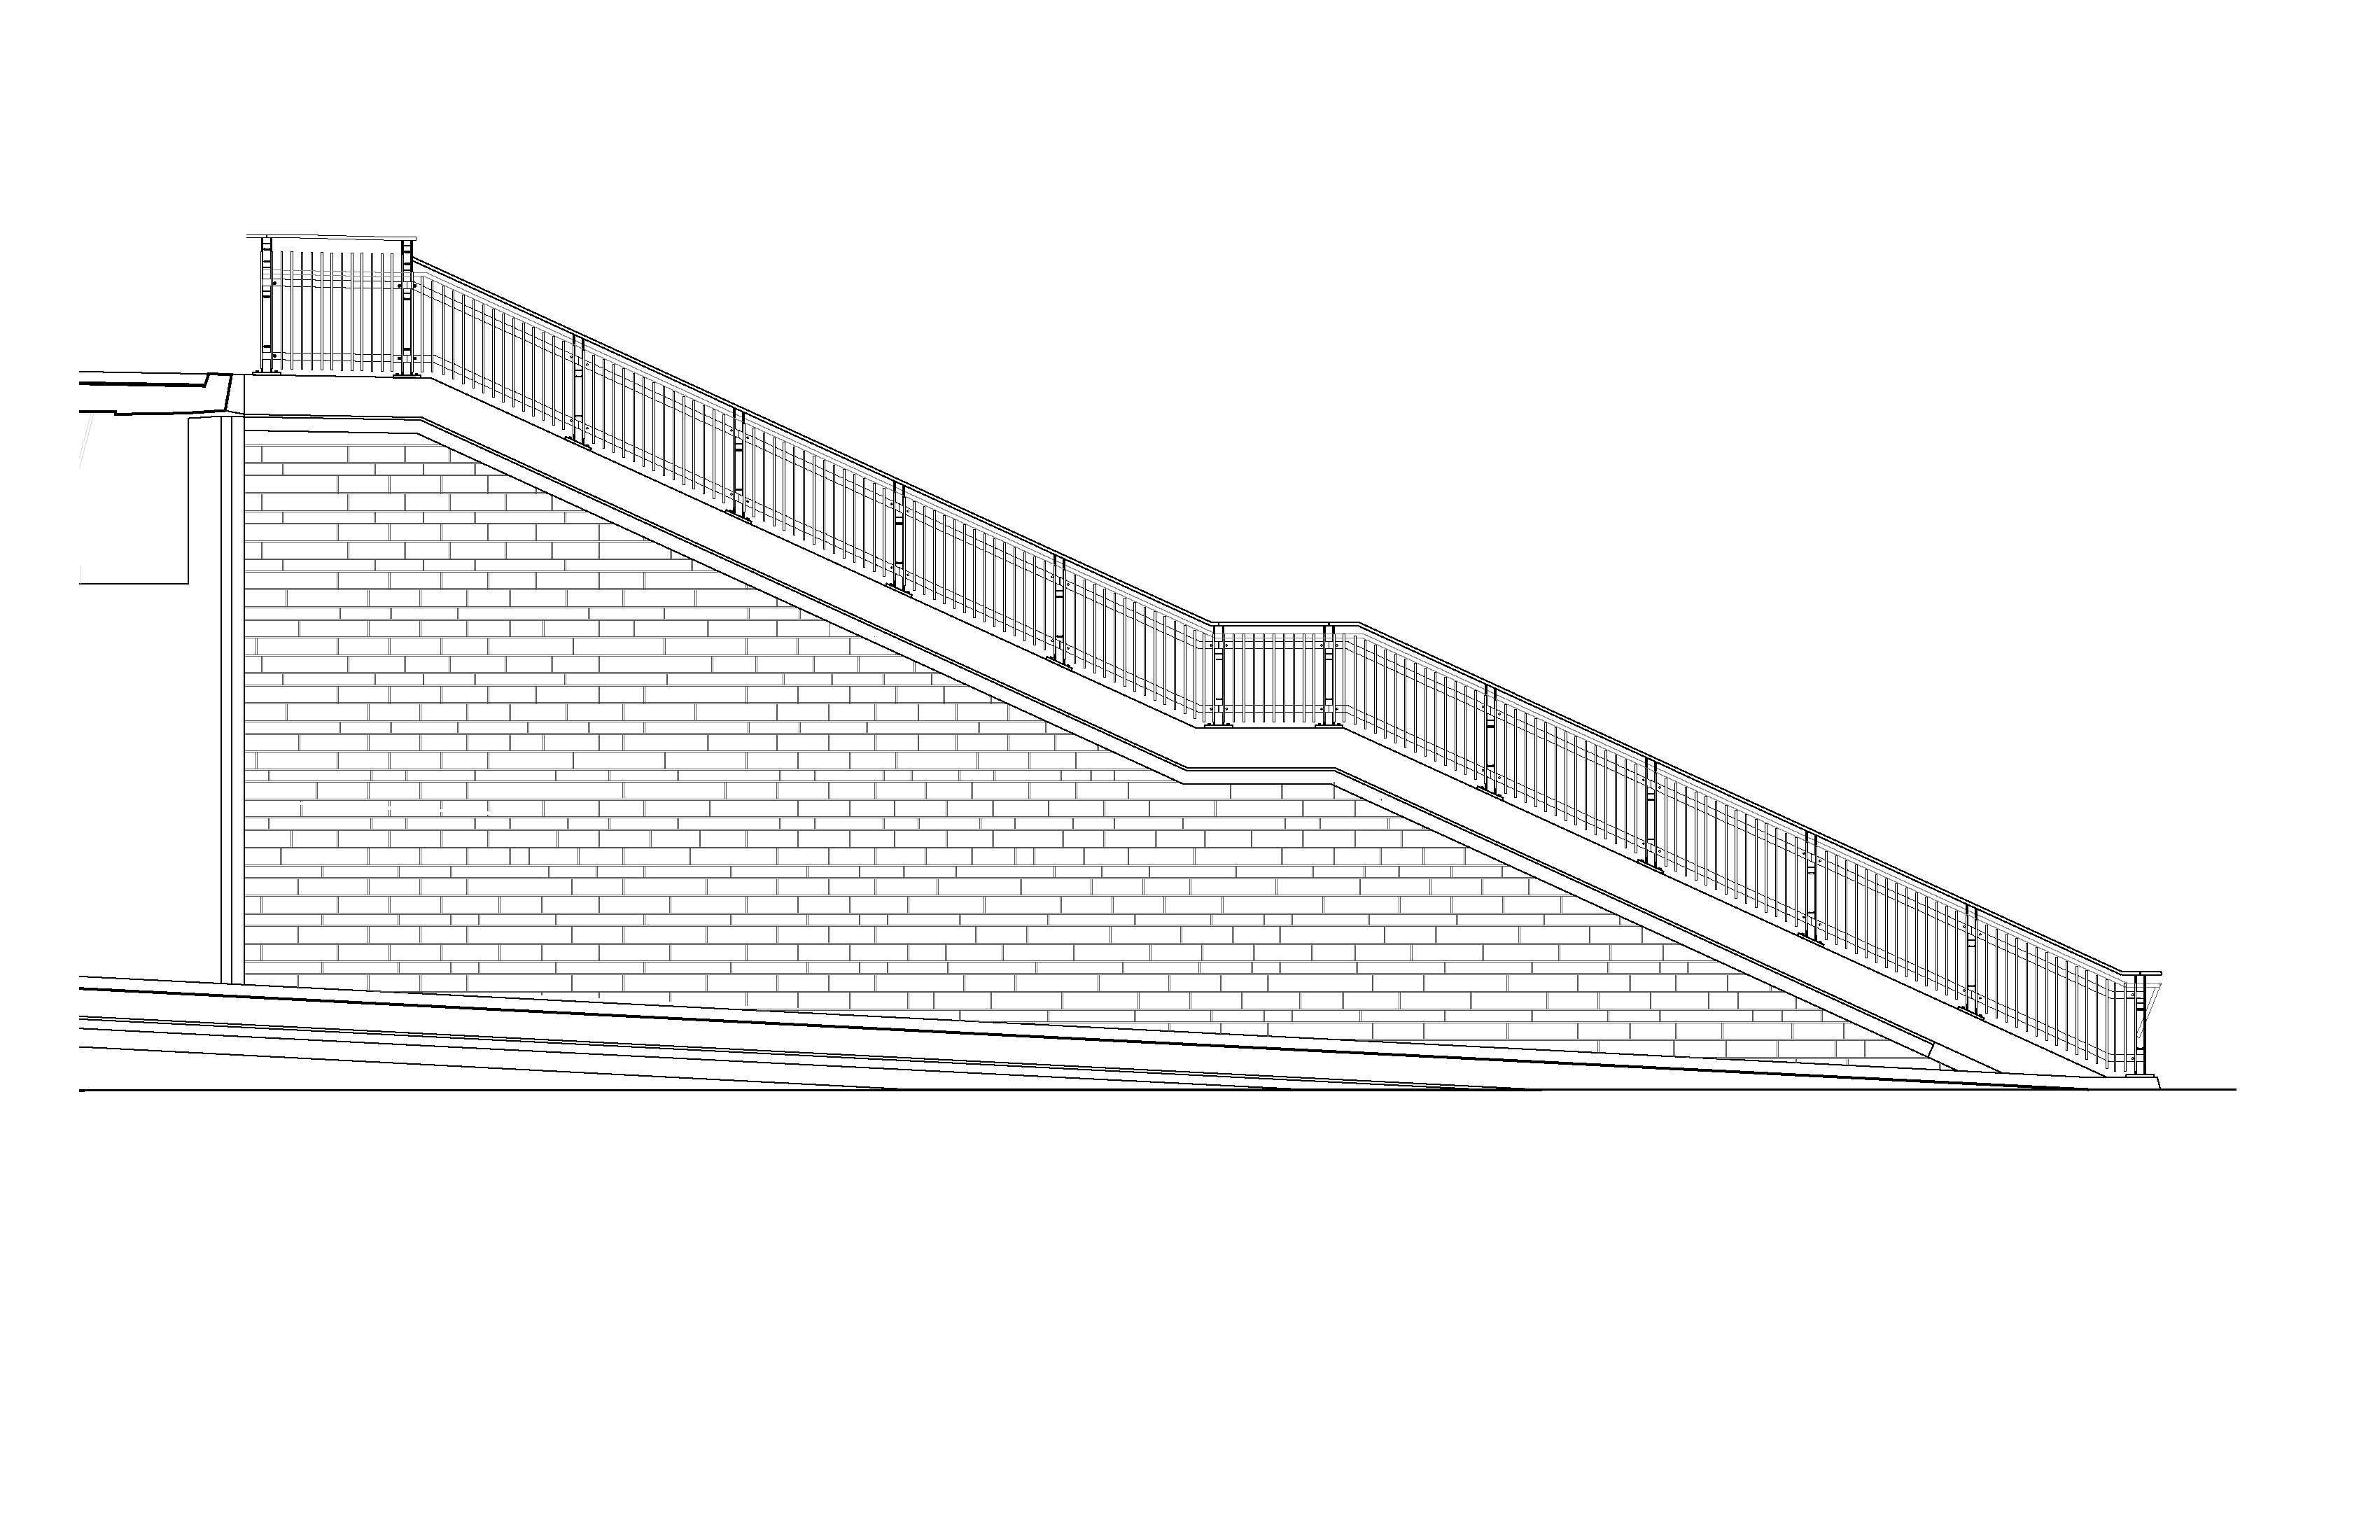 A rendering of the revised East stair railing detail.